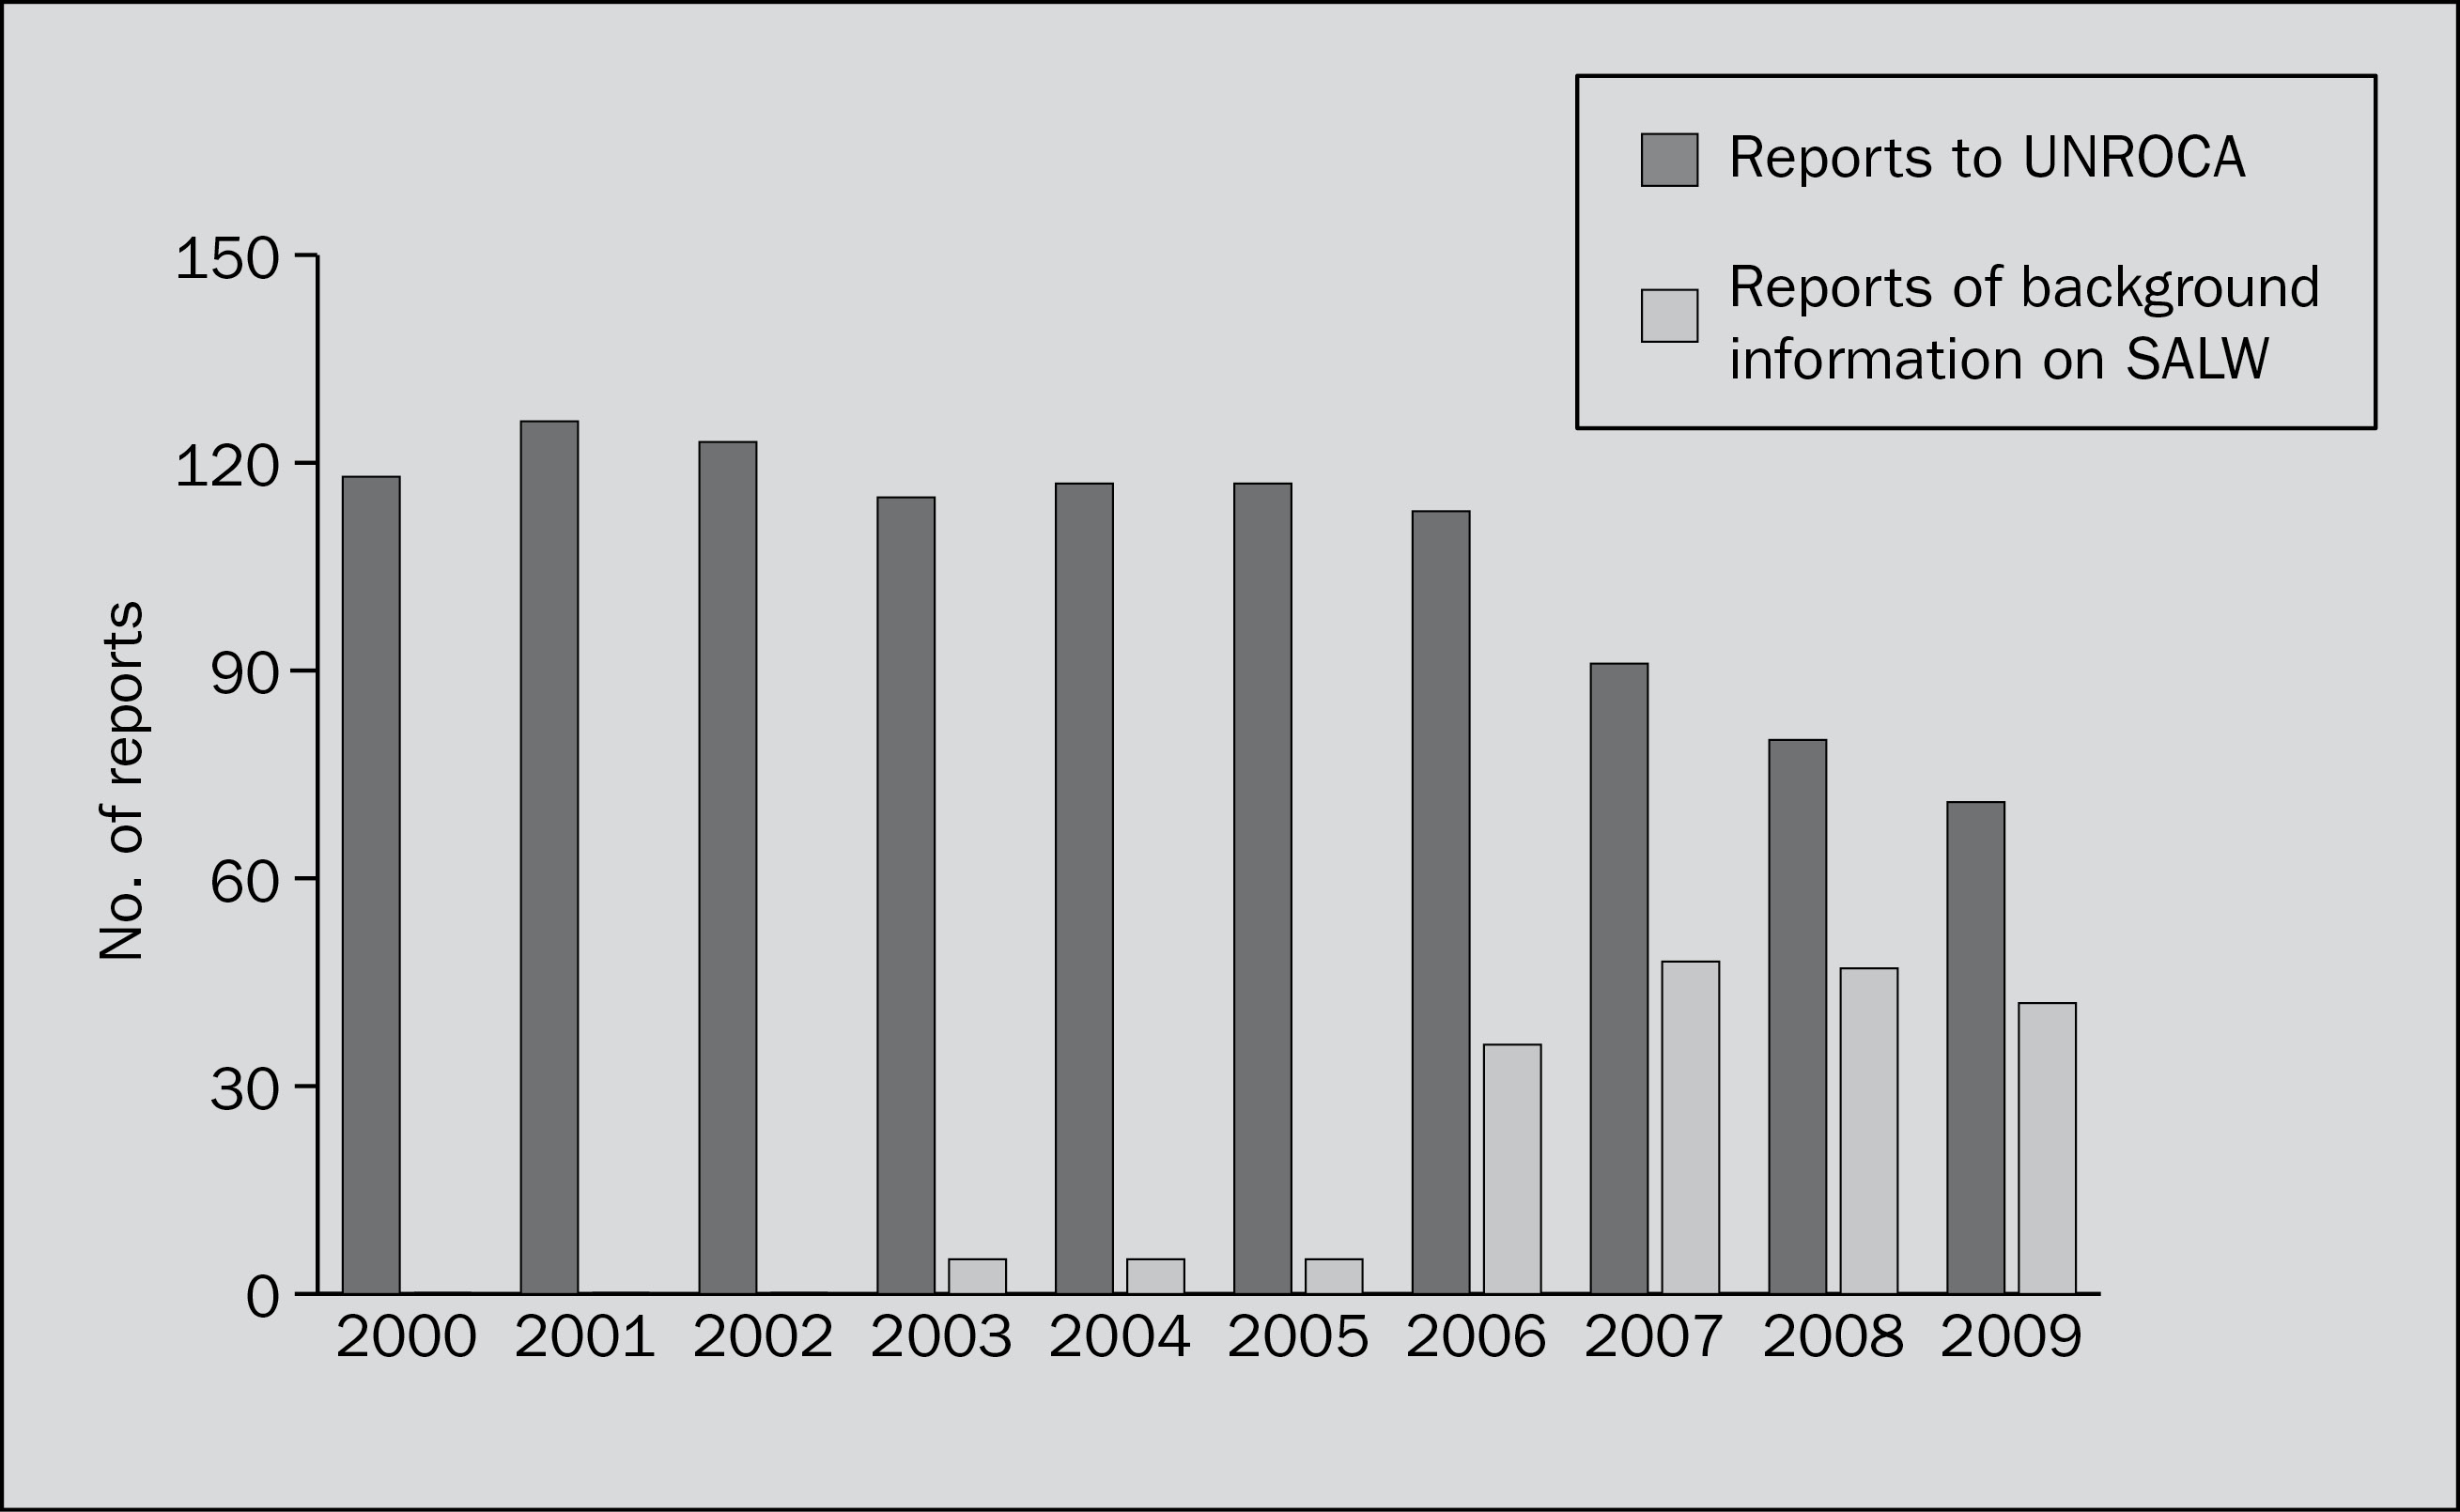 Reports to UNROCA, 2000–2009